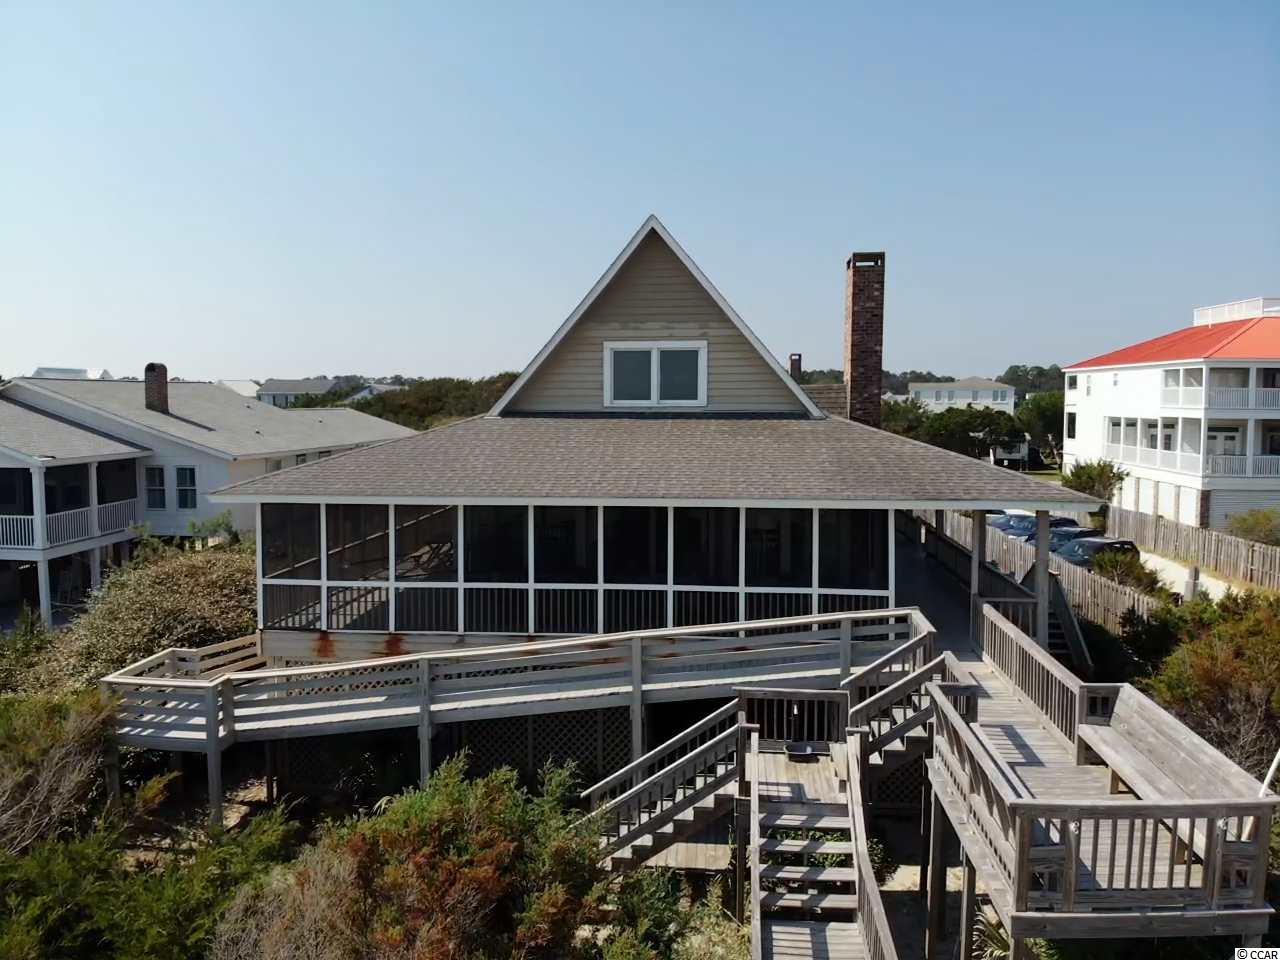 "Don't miss this rare opportunity to own your piece of heaven in Pawleys Island and enjoy all the beauty of the wonderful low country seasons in this 4-week interval ownership home located ocean front on the north end of the island. Grayman II is one of the only 4 homes on Pawleys grandfathered to allow interval ownership with each of the 13 intervals having deeded ownership and exclusive use of the home for one week each quarter. The occupancy schedule rotates on a yearly basis to ensure equitable usage to all owners. The home is professionally managed and cleaned by a maid service weekly at the end of each stay. With 4 bedrooms and 3 baths the home comfortably sleeps 10. Master suite with king bed is located on the main living area with two other bedrooms and features stunning views of the ocean and includes private access to the screen porch. Stairs in living area lead up to the 4th bedroom with queen bed, daybed and private bath.  Owners of Grayman II enjoy a large open living area with spectacular views of the Atlantic Ocean featuring a cathedral and beam ceiling in main living area and a wood burning fireplace. The kitchen is open to living and dining area with stainless steel appliances and granite counter tops. All the living areas open up onto very large wrap around screen porch for extra living space and entertaining. This essential ocean front screened porch is the heart and soul of Grayman II and the Pawleys Island life style; perfect for rocking in the morning with a cup of coffee, for grabbing a book or a nap in the hammock, for hosting candlelight dinners at the outside dinning table; this spacious screen porch will likely be your favorite ""room in the house"". Interval Ownership at Grayman II is all about good times and easy living; so pack up your beach clothes and flip flops and enjoy the best in beach living at Pawleys Island; close to area restaurants, night life, shopping, and championship golf courses. The attractions of Myrtle Beach and airport are 20 miles north and the Historic city of Charleston is 60 miles south. Don't miss this chance to live all the charmed beach life of historic Pawleys Island at a fraction of the cost. All dimensions and HOA info should be verified by the Buyer."